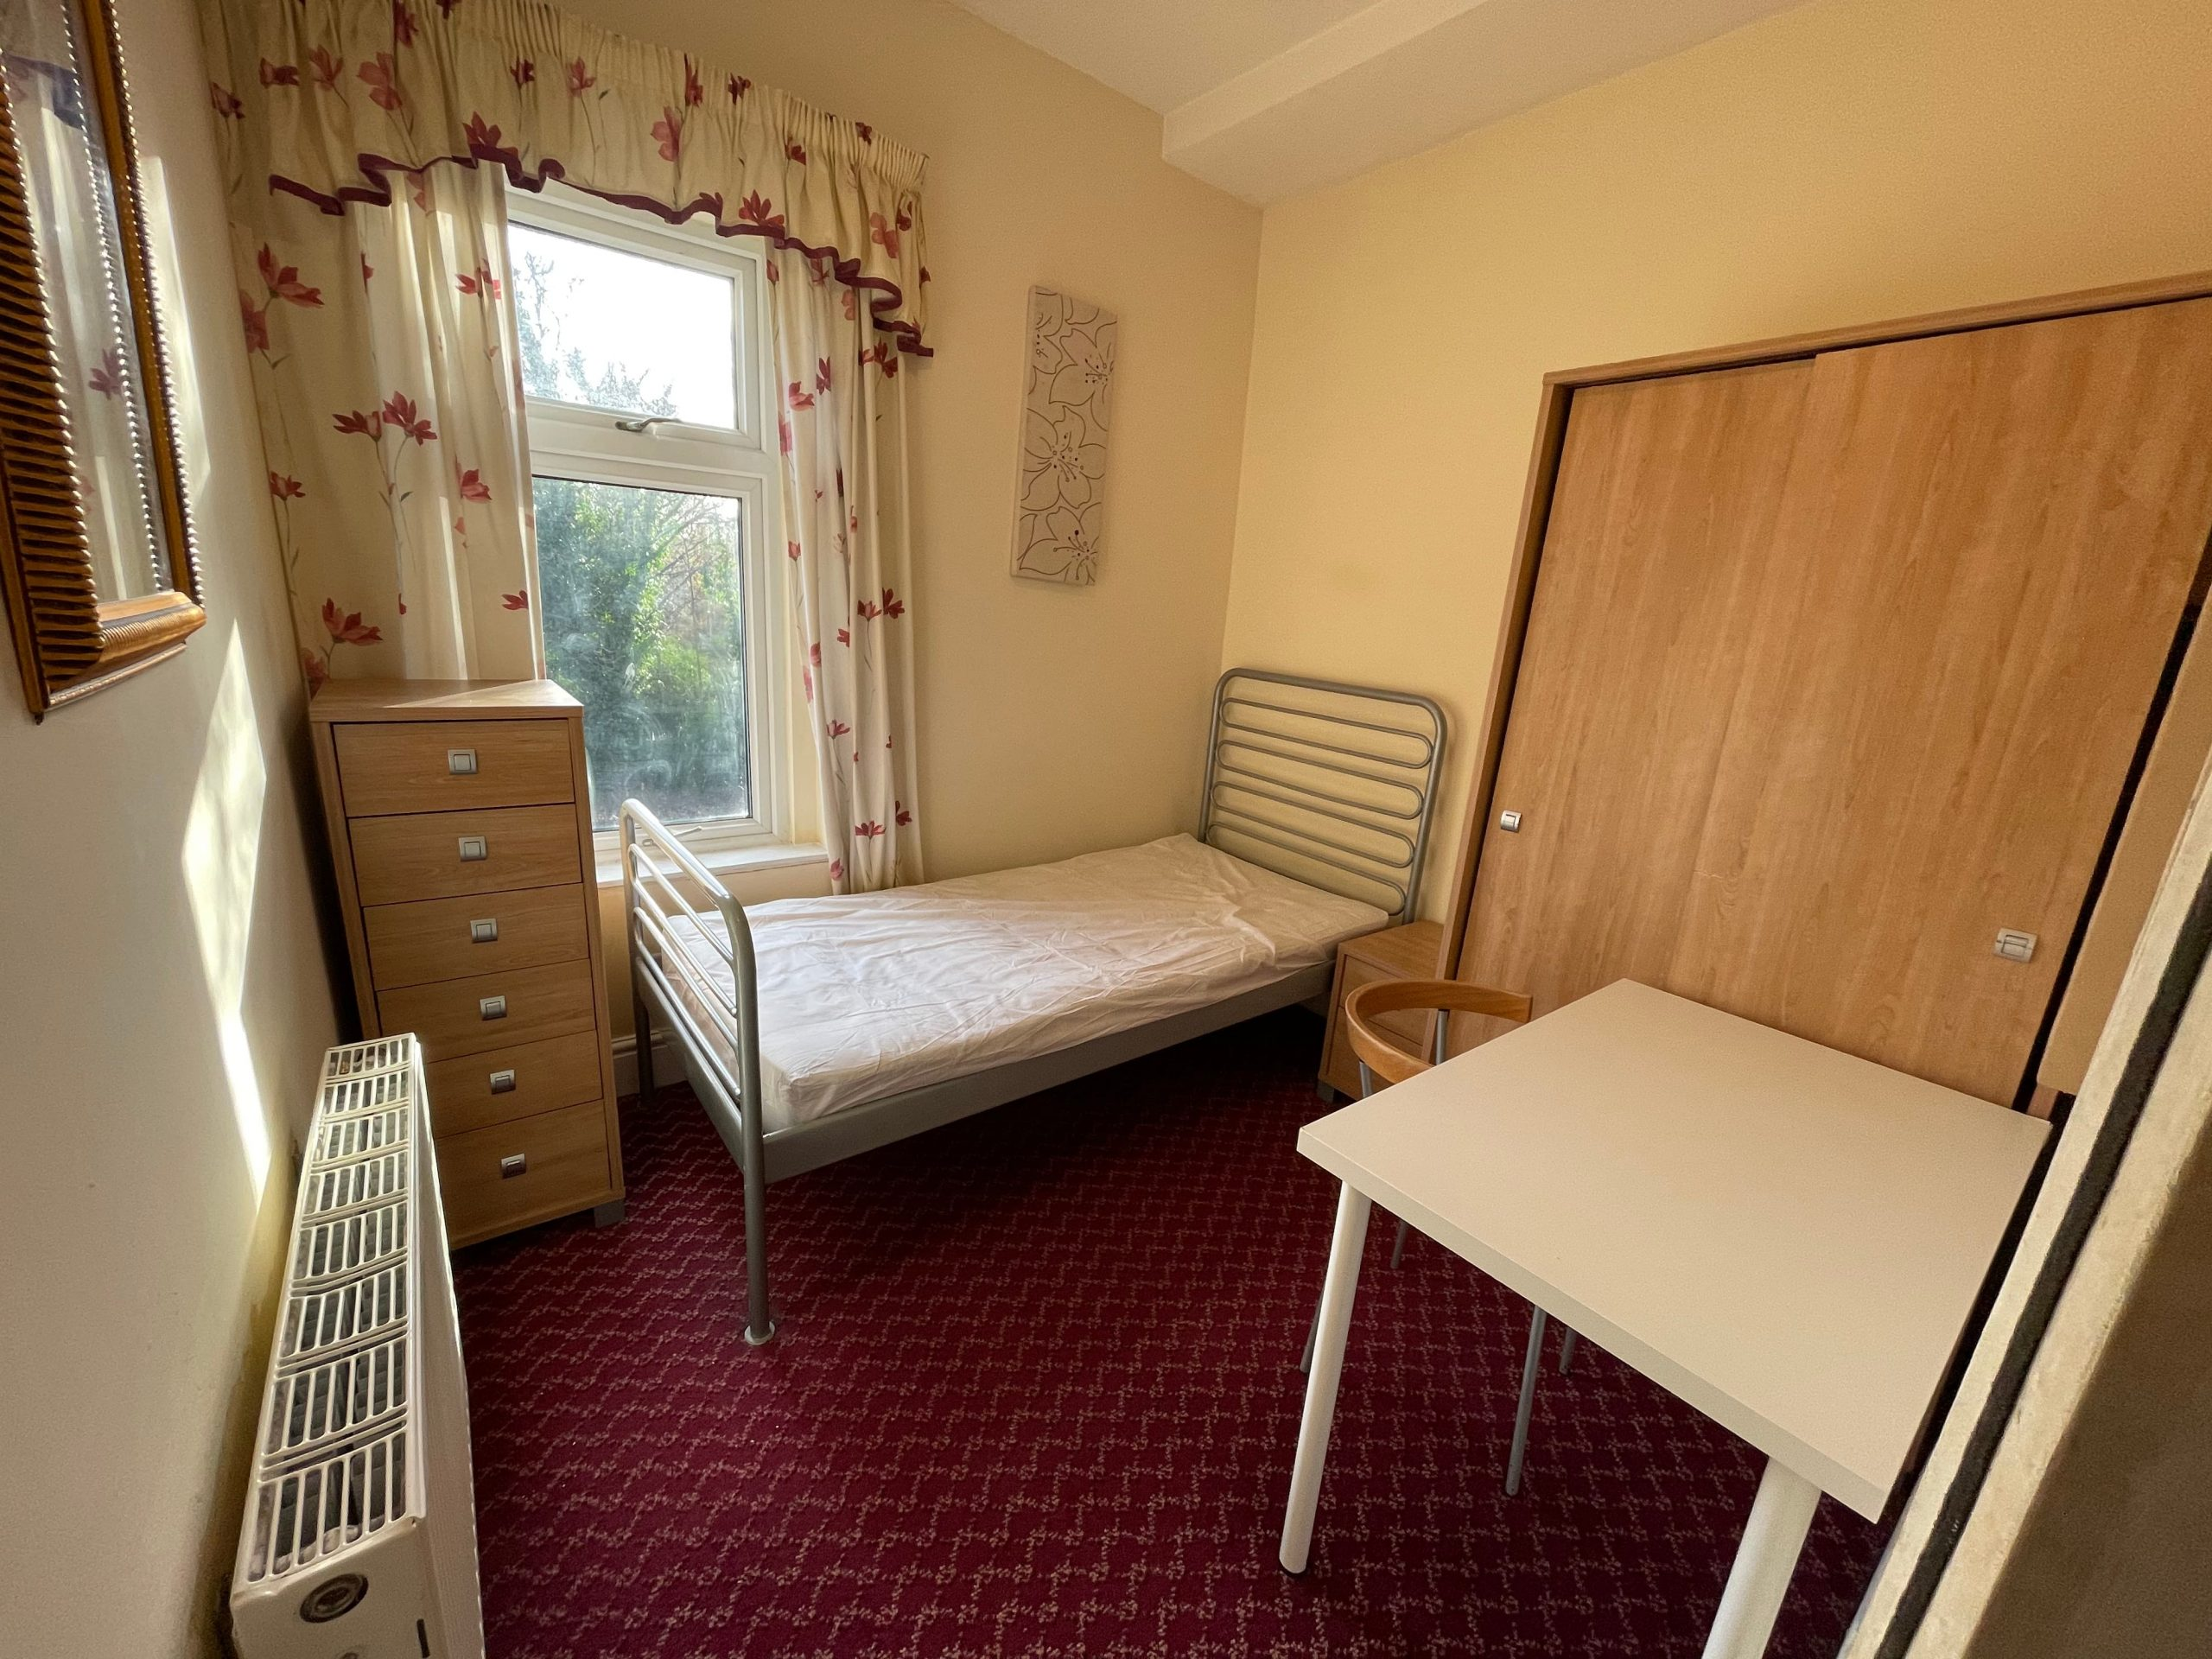 Rent a Room in Chester